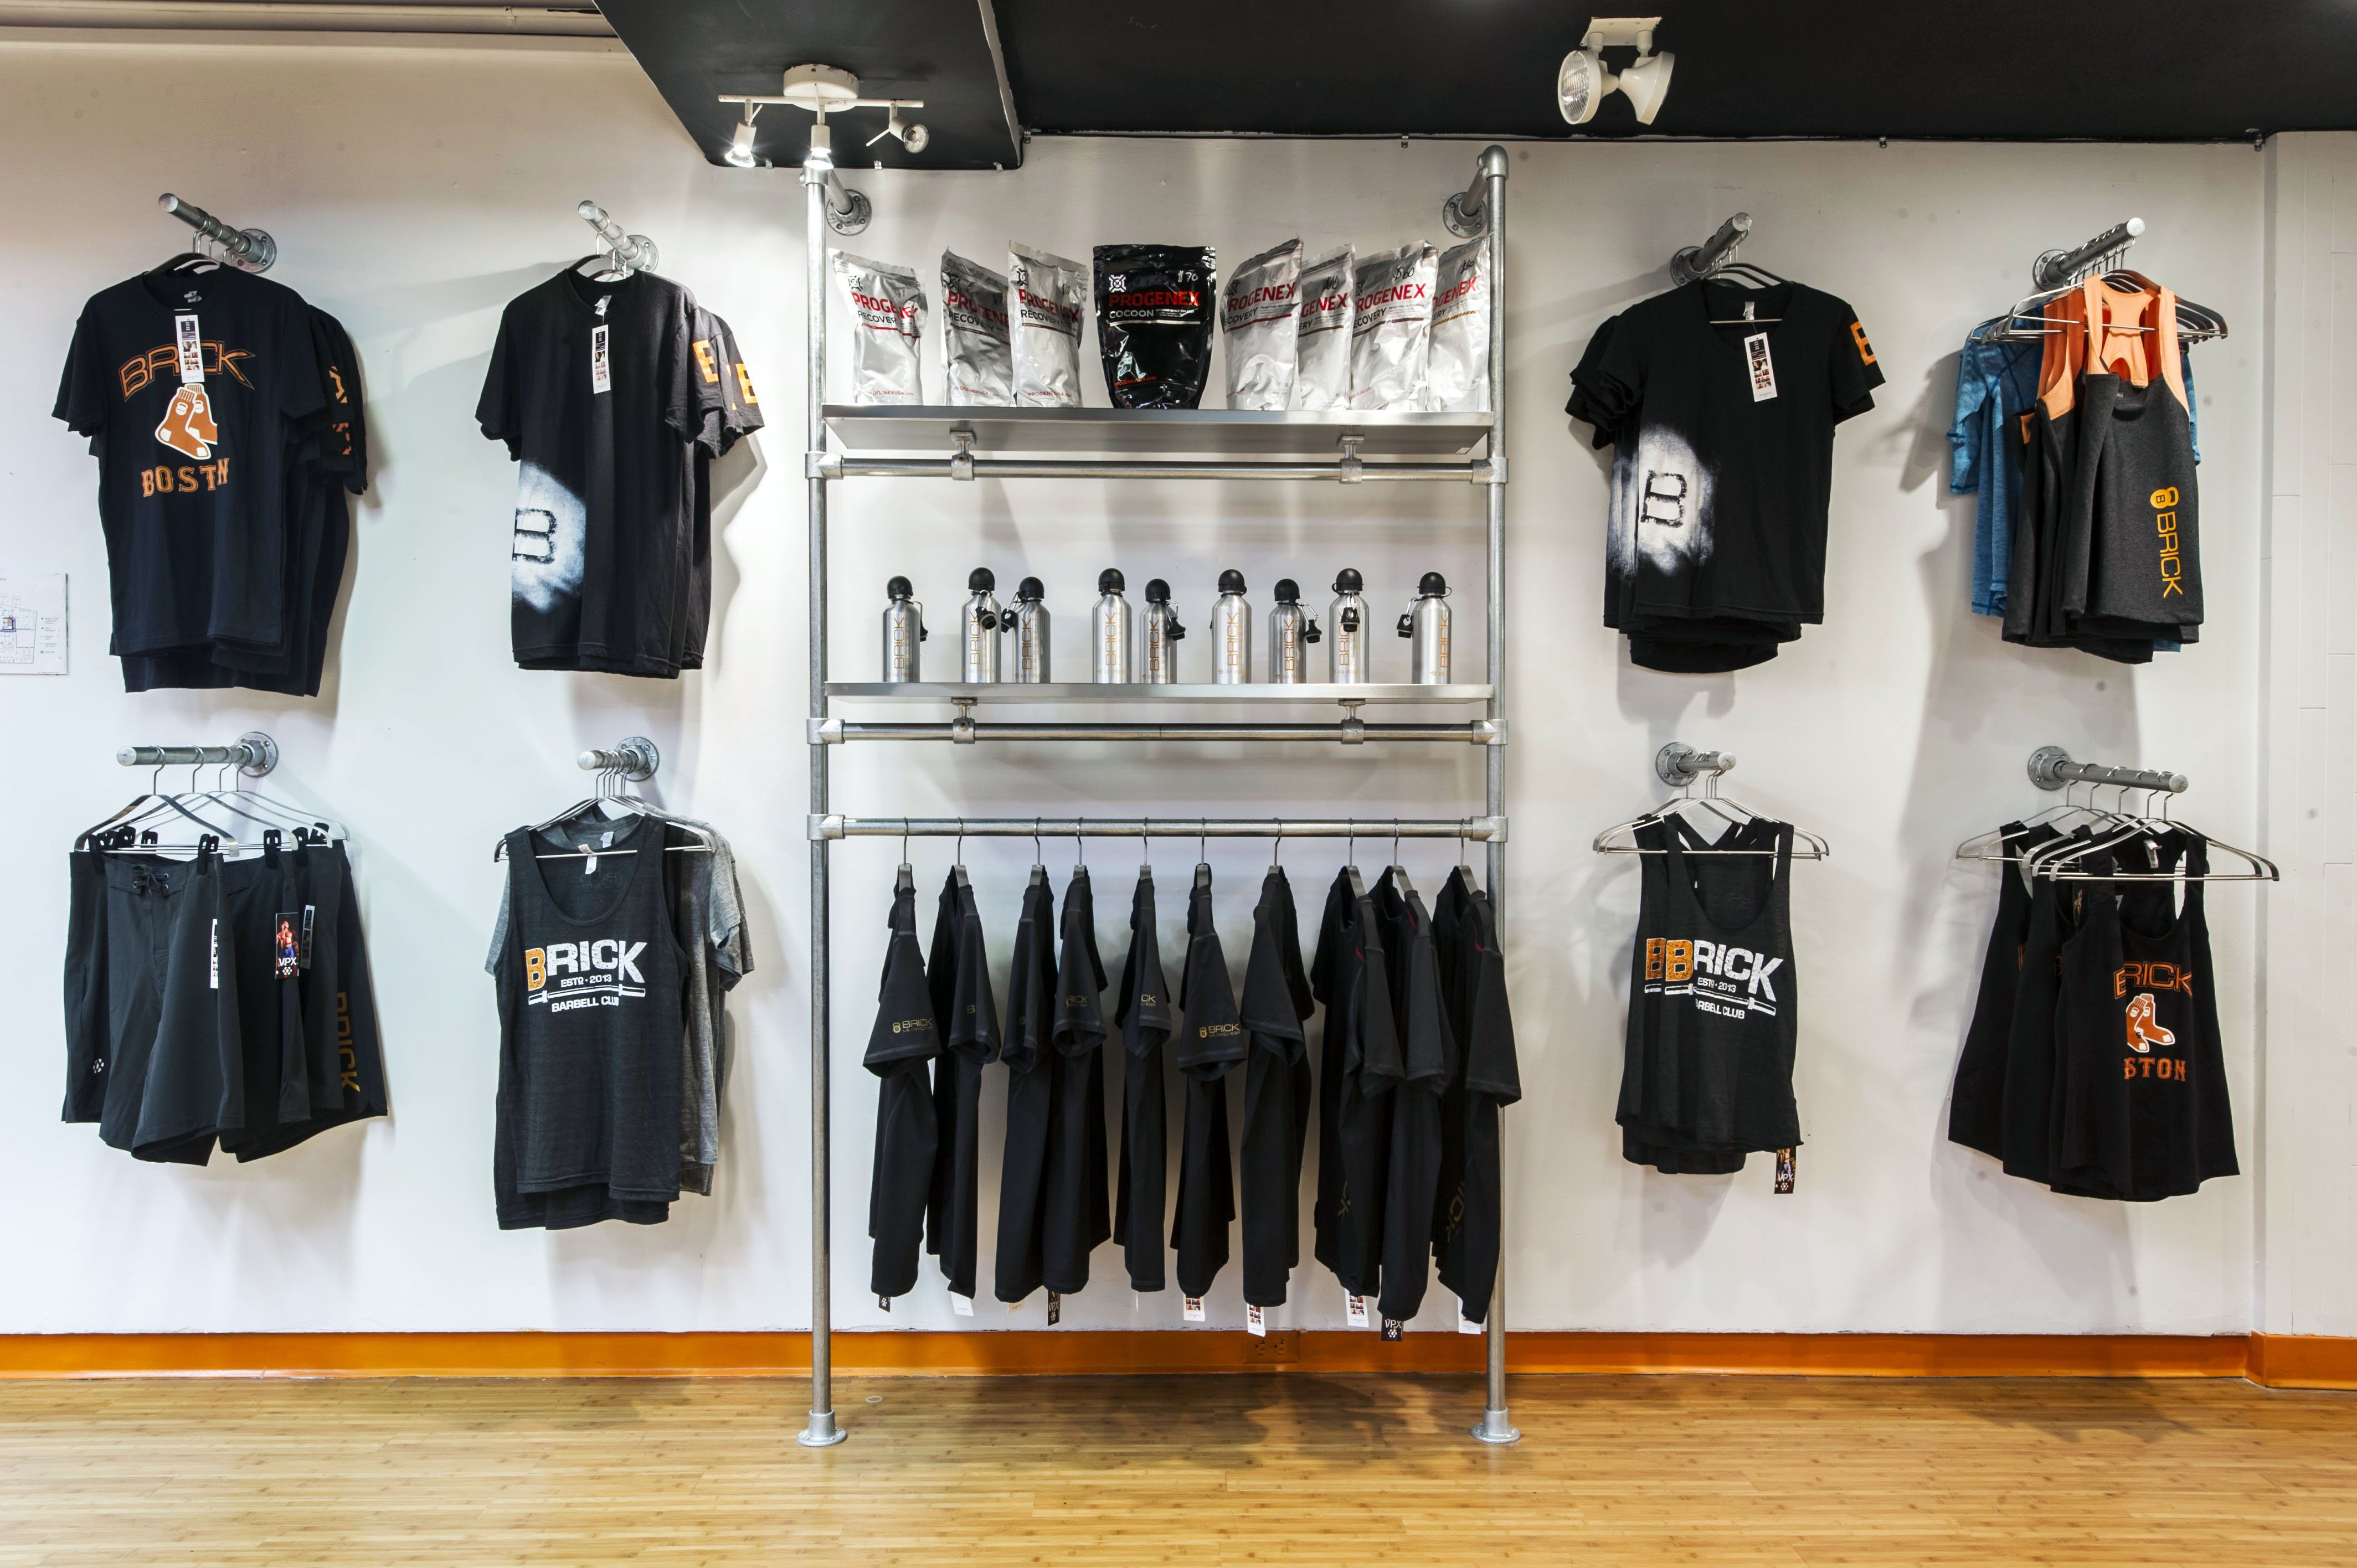 Wall Mounted Clothing Racks See More Ideas Like This One In 39 Diy Retail Display Ideas From Clothing Racks To Sig Clothing Rack Retail Display Shop Display